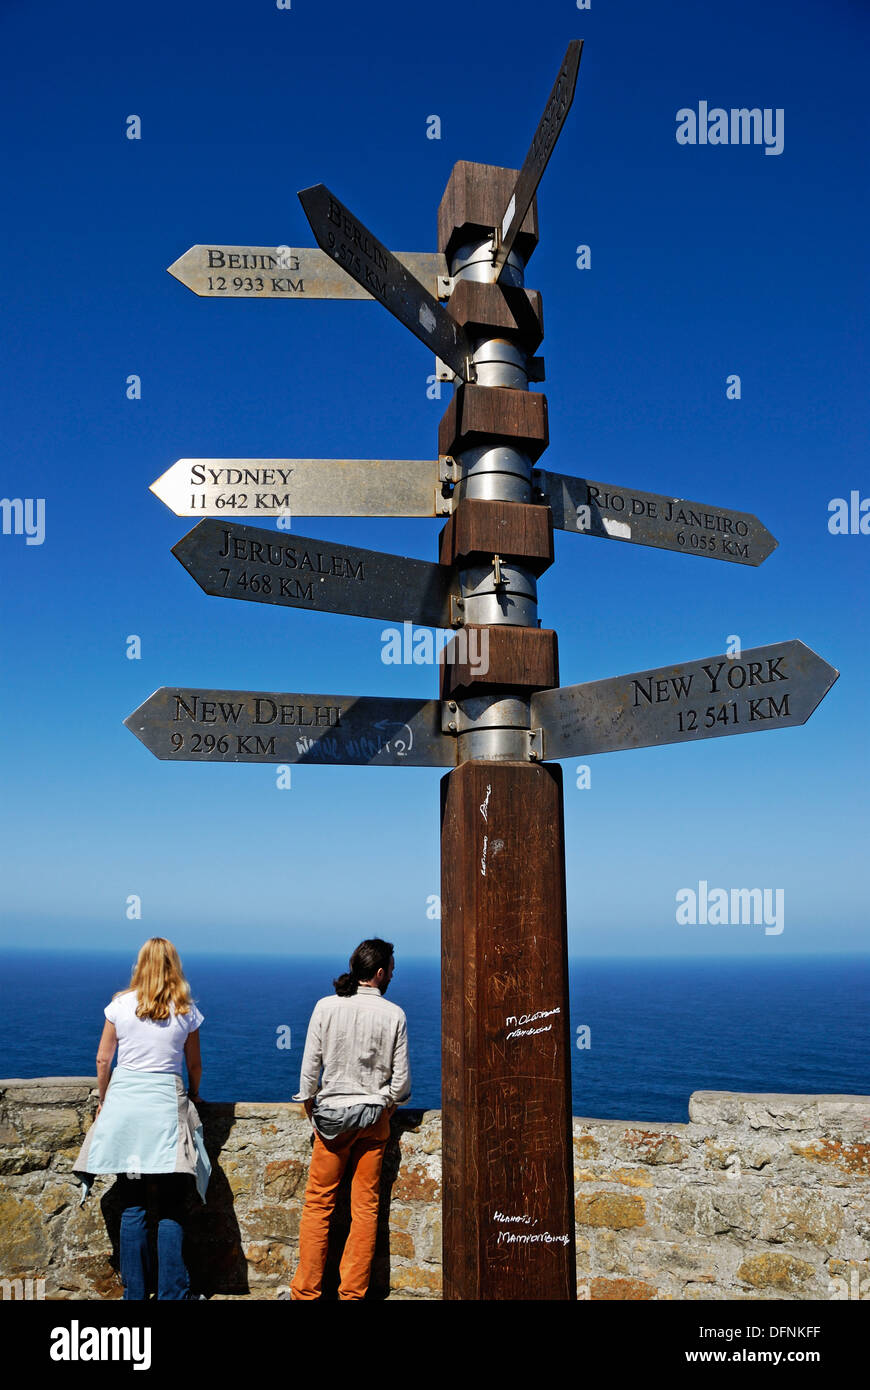 Couple by distance signpost to capital cities, Cape of Good Hope, Western Cape Province, South Africa - Stock Image